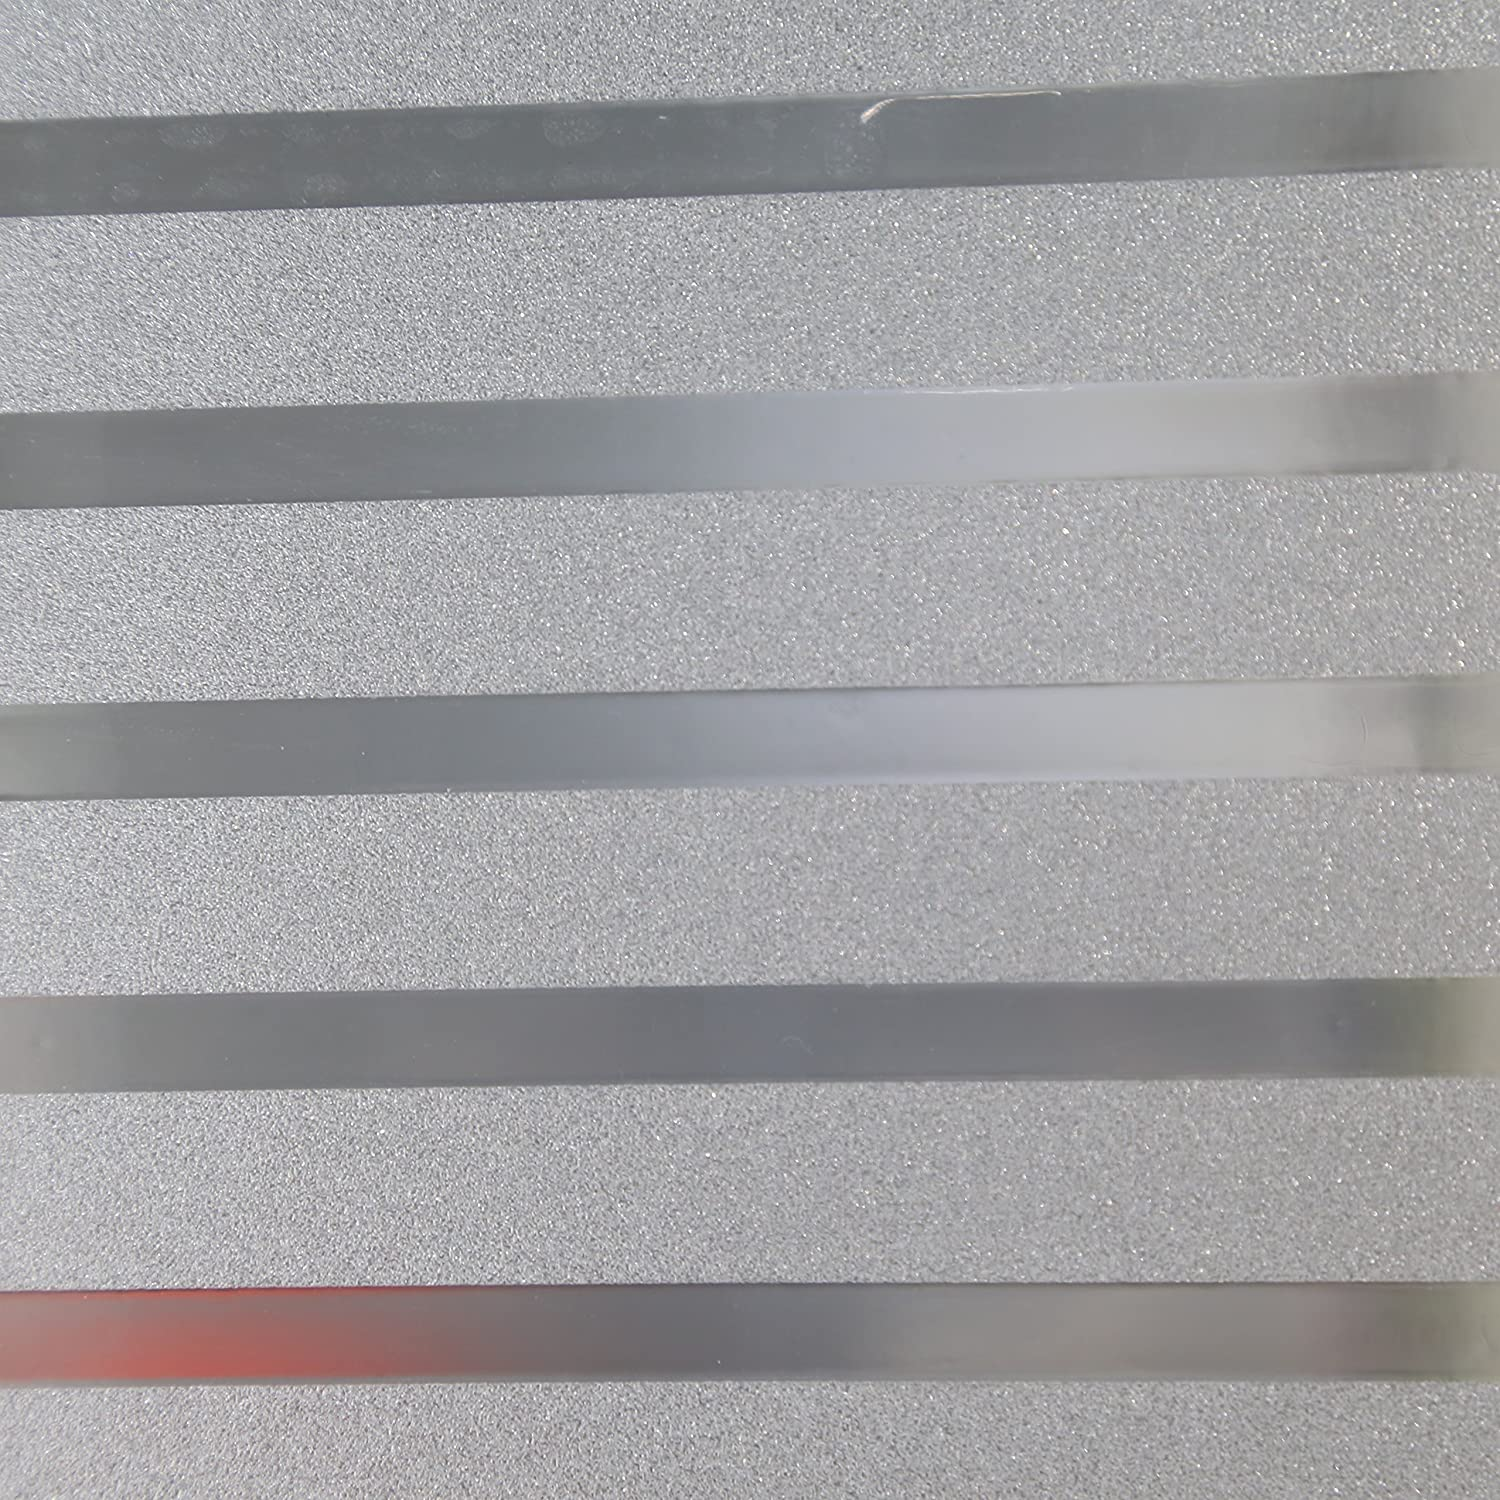 Yoyokmc 2D No Glue Static Decorative Privacy Window Films Frosted Window Film for Glass Non-Adhesive Heat Control Anti Uv for Office and Home Decoration Strip, 17.7x78.7